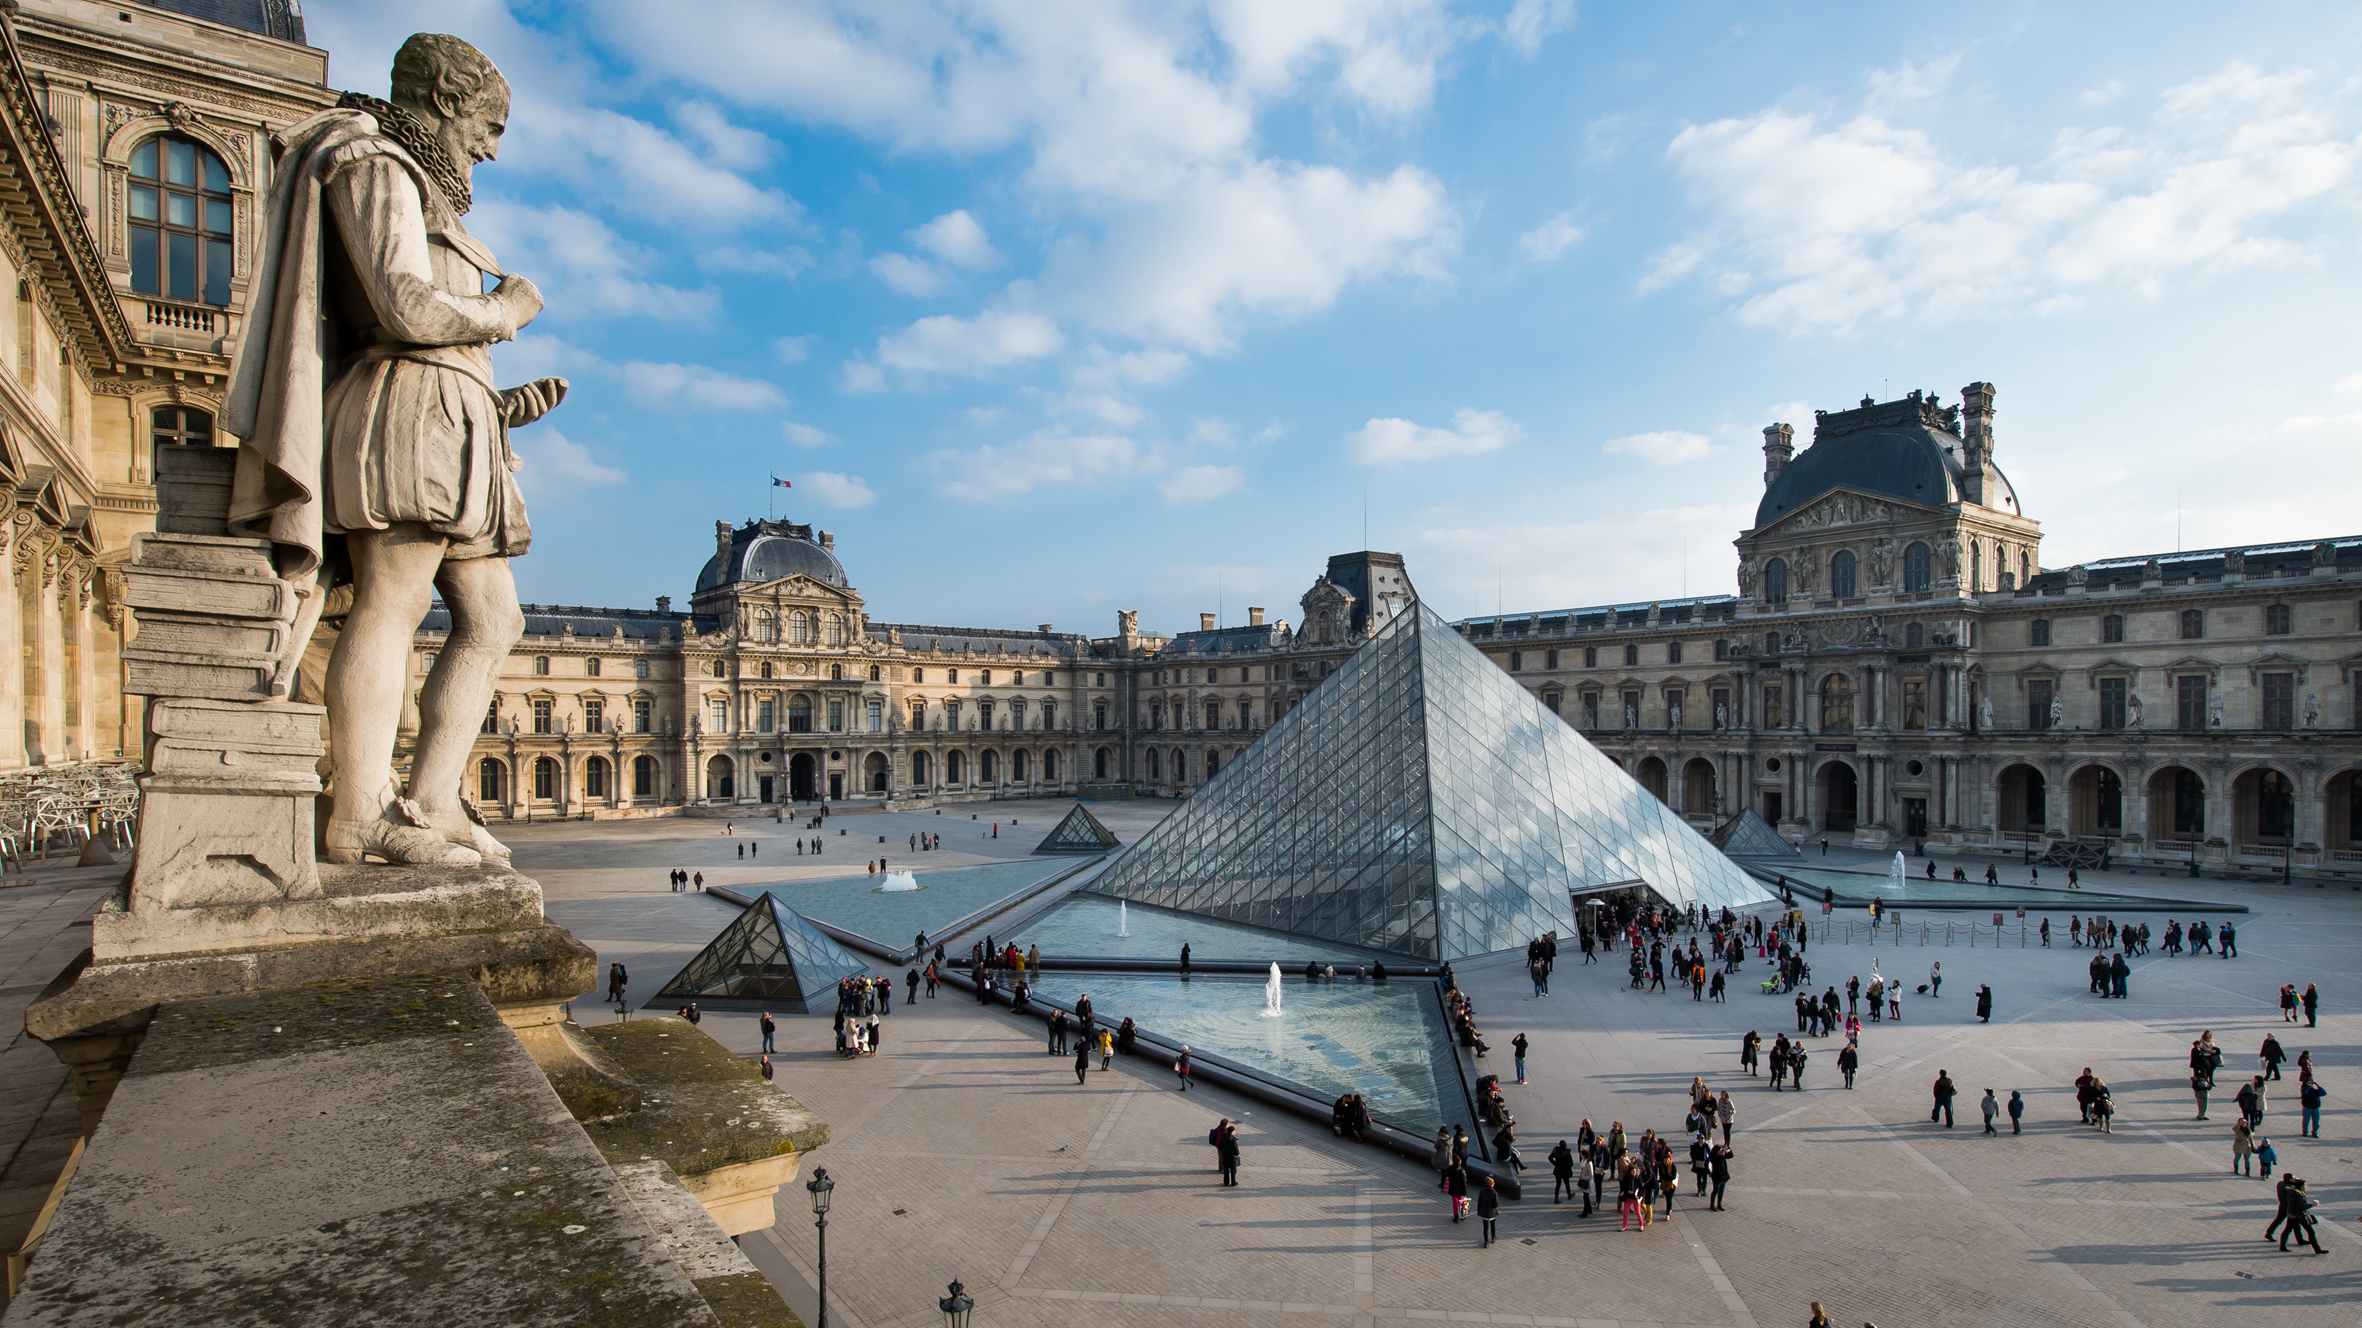 Private Tour Of Louvre In Paris Will Set You Back 34 000 Cnn Travel